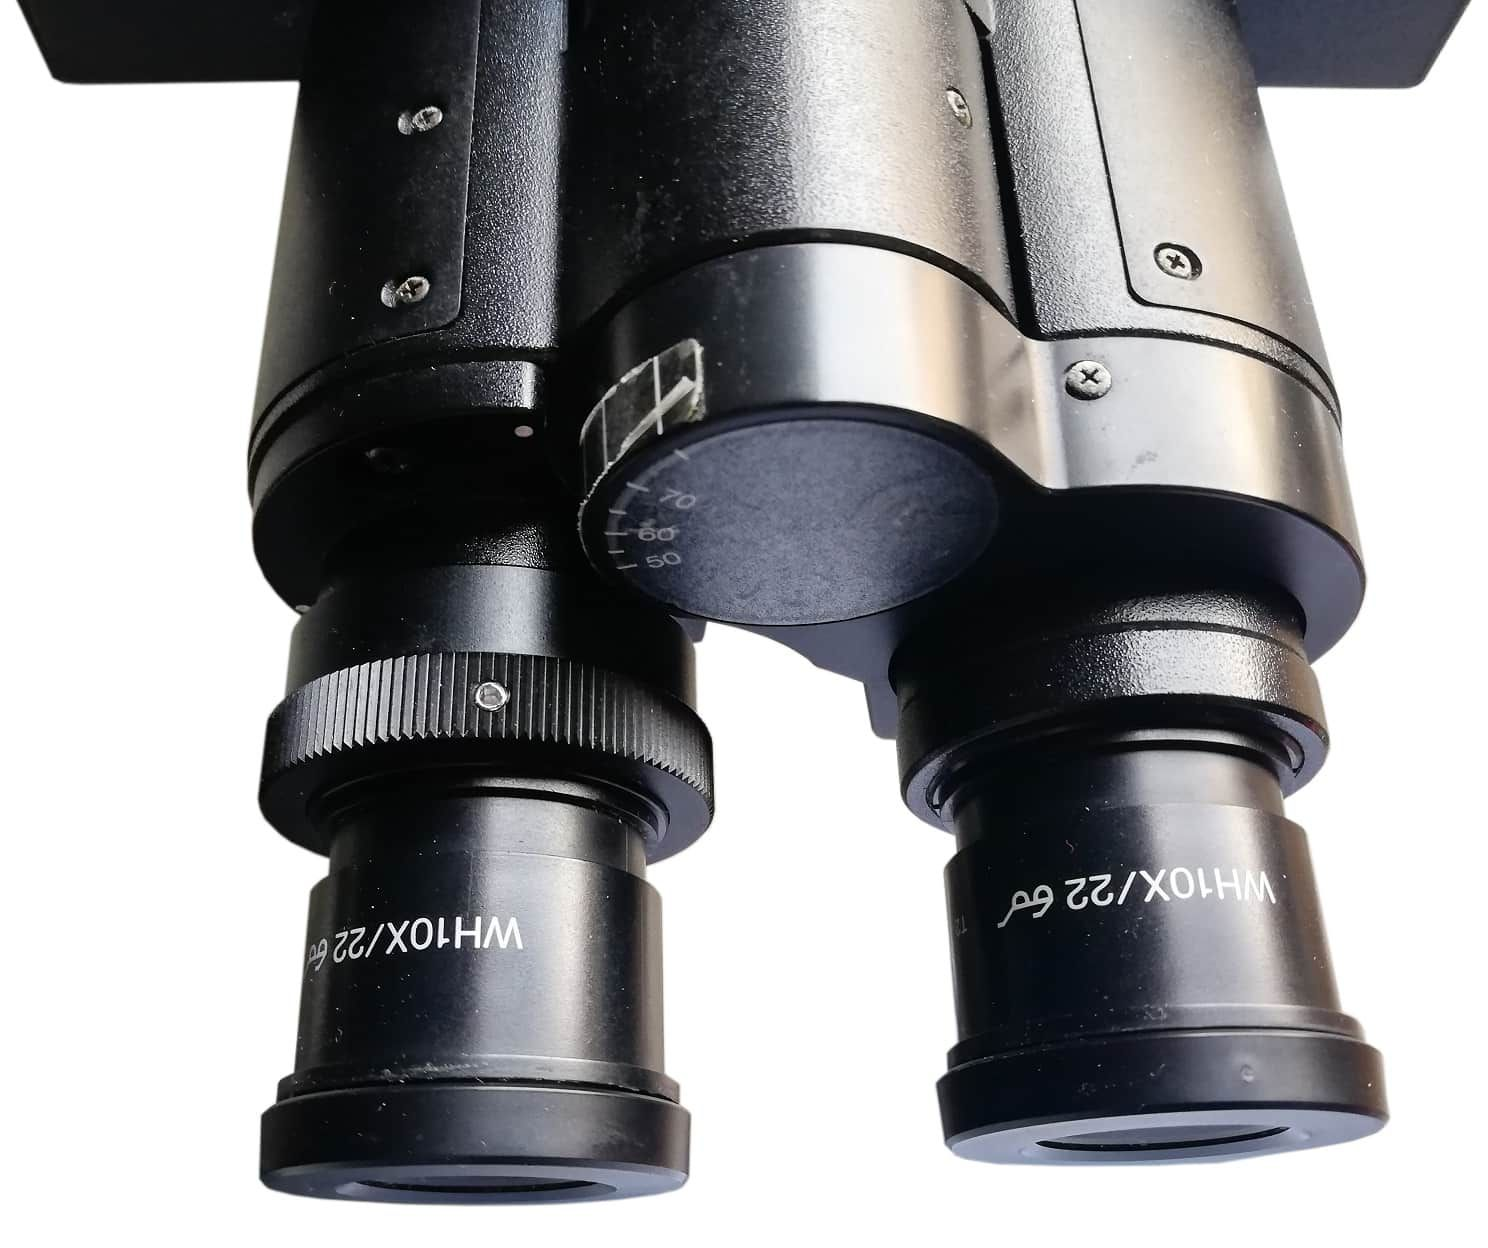 Olympus BX60 Fluorescence Research Microscope